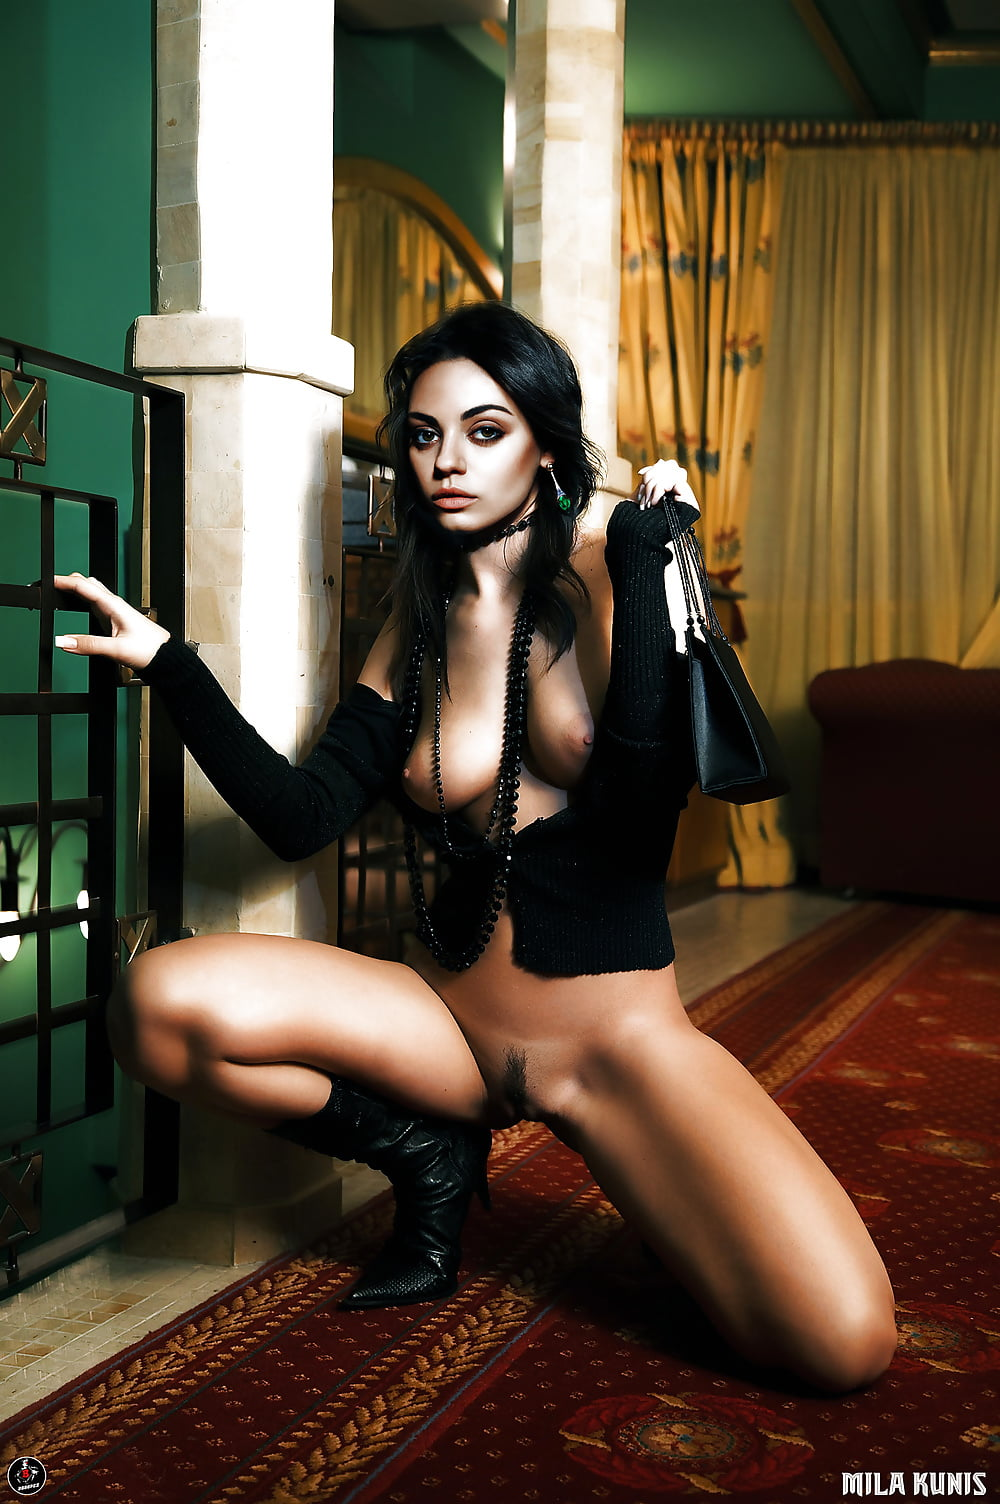 tight-lesbian-hot-naked-mila-kunis-pornpics-couple-sex